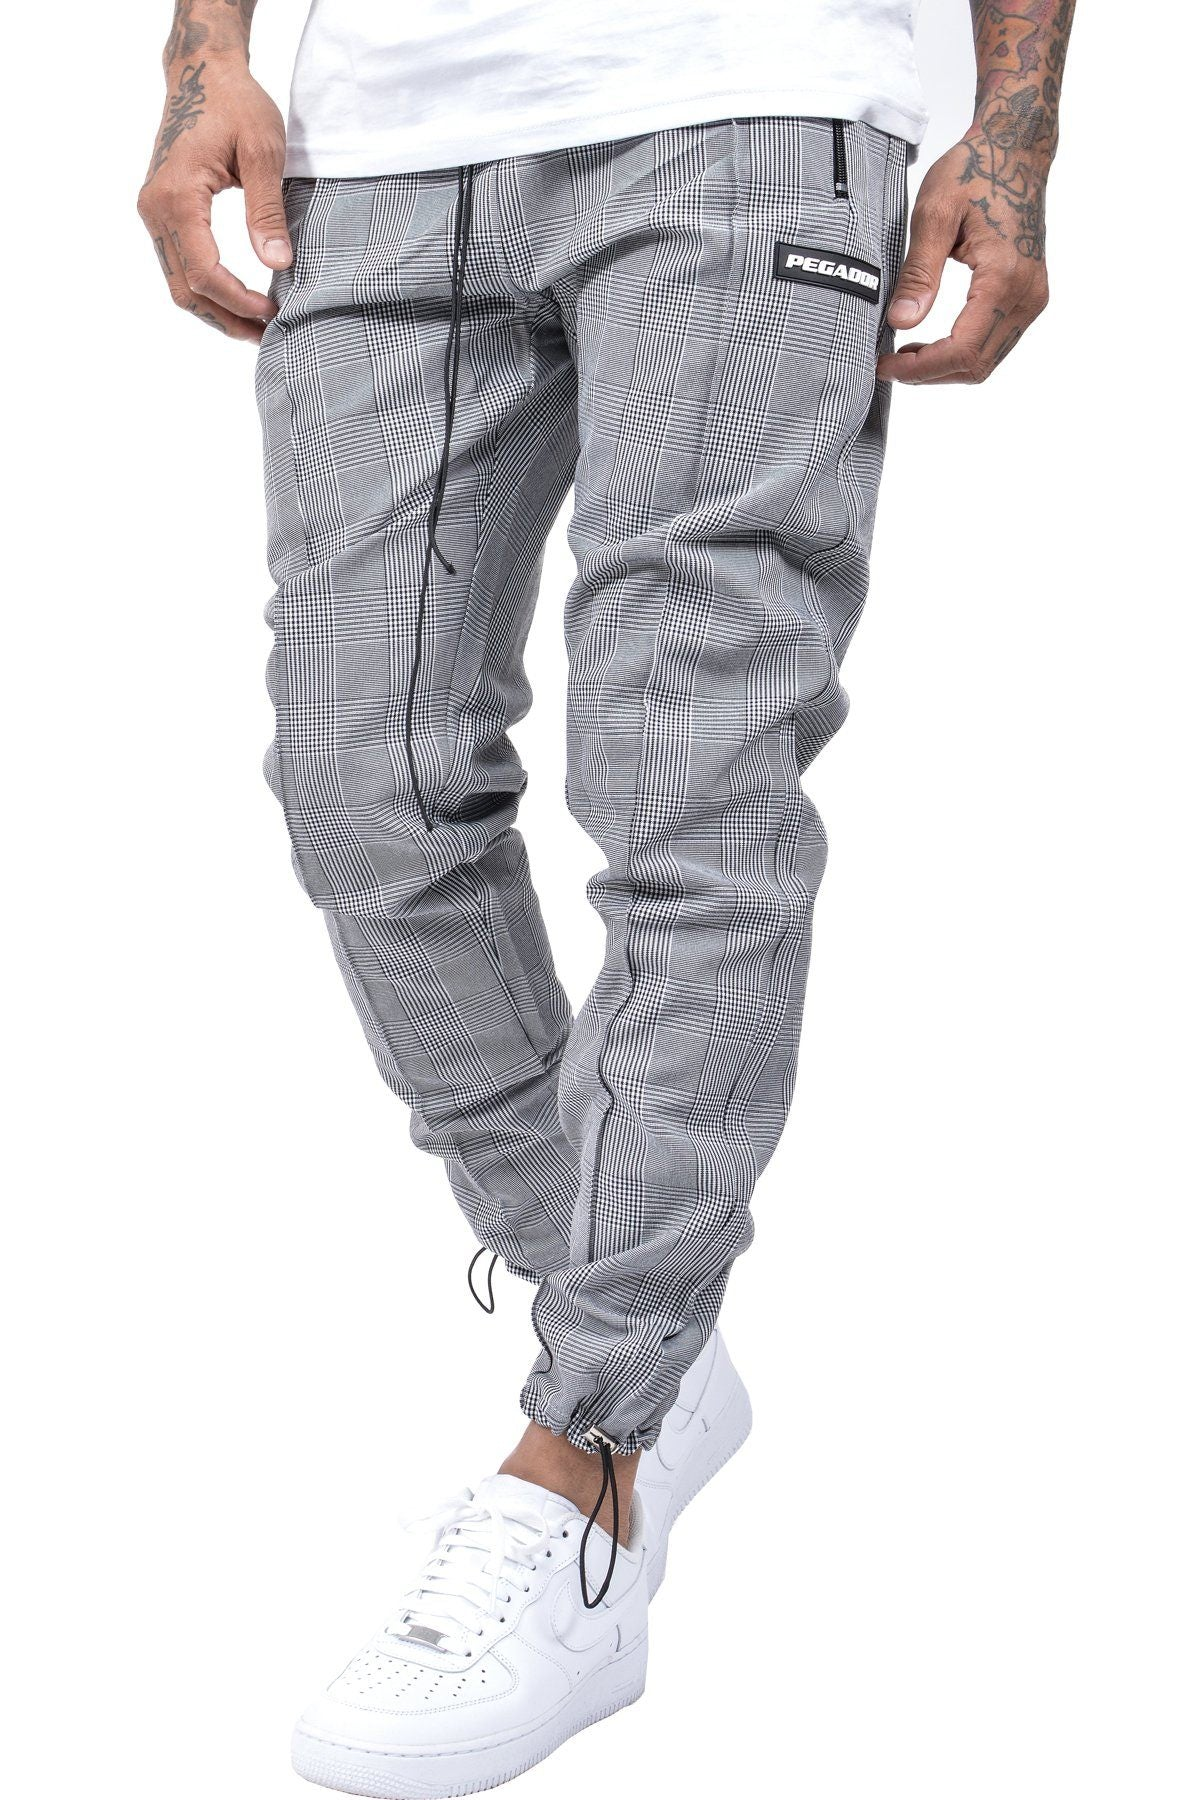 Pino Pants Checkered - PEGADOR - Dominate the Hype